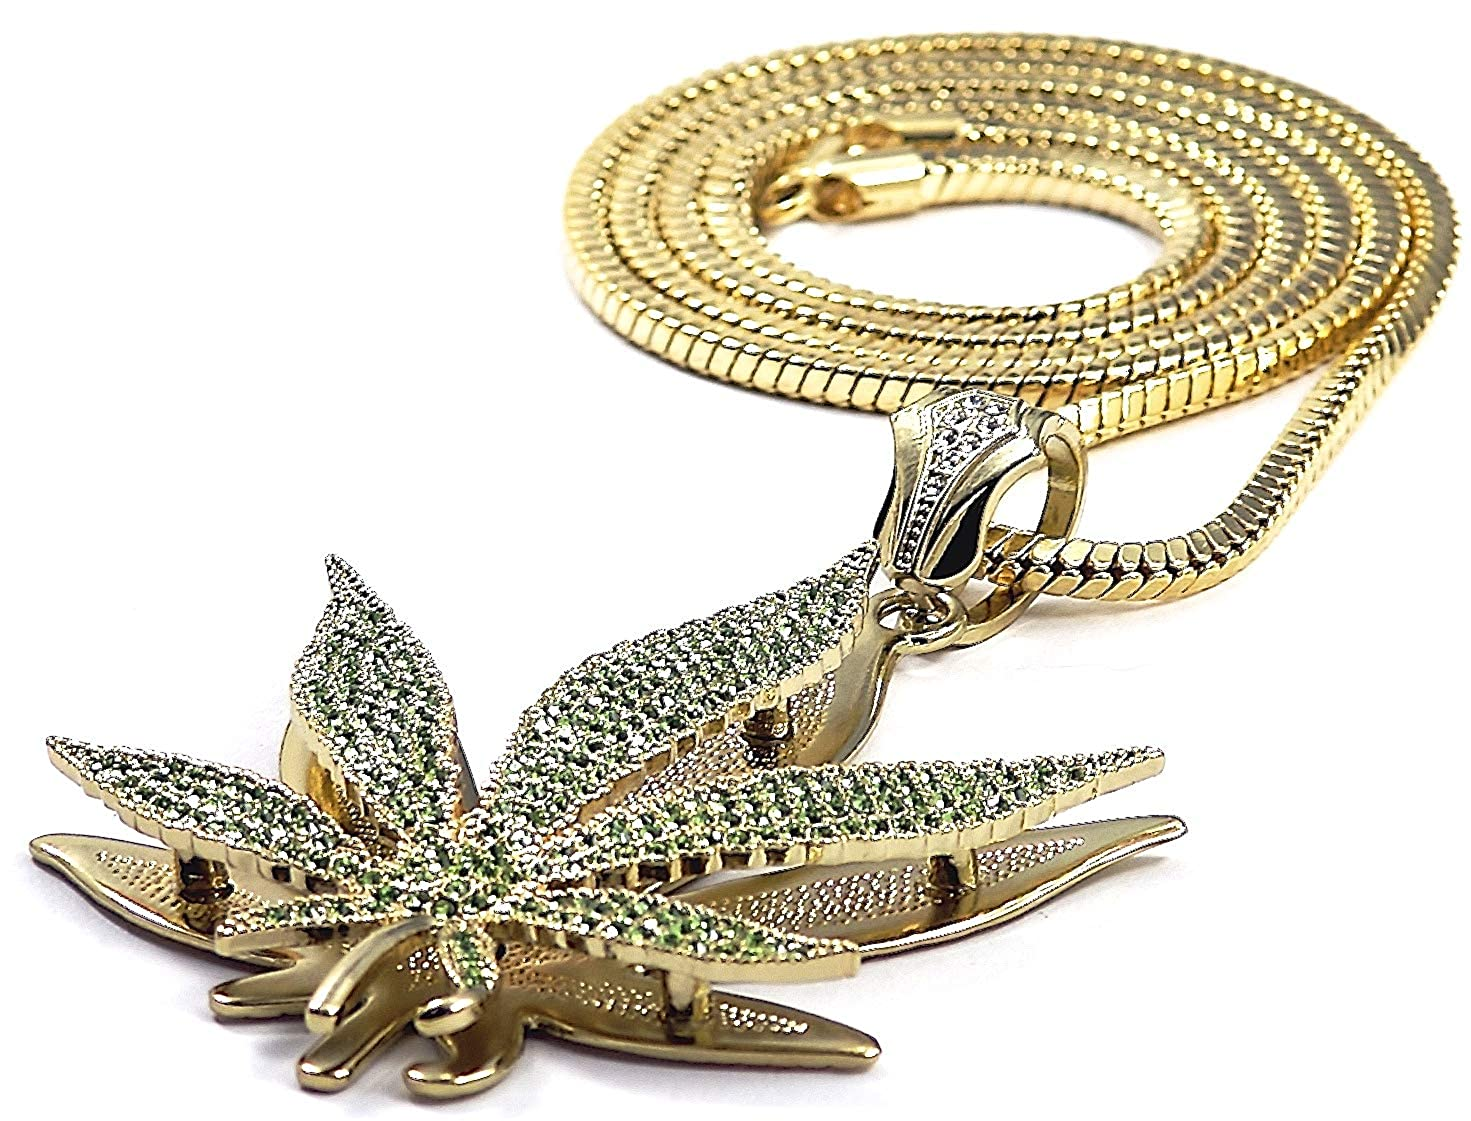 GWOOD Weed Pot Leaf Iced Out with Snake Chain Gold//Green Color Pendant Necklace Large